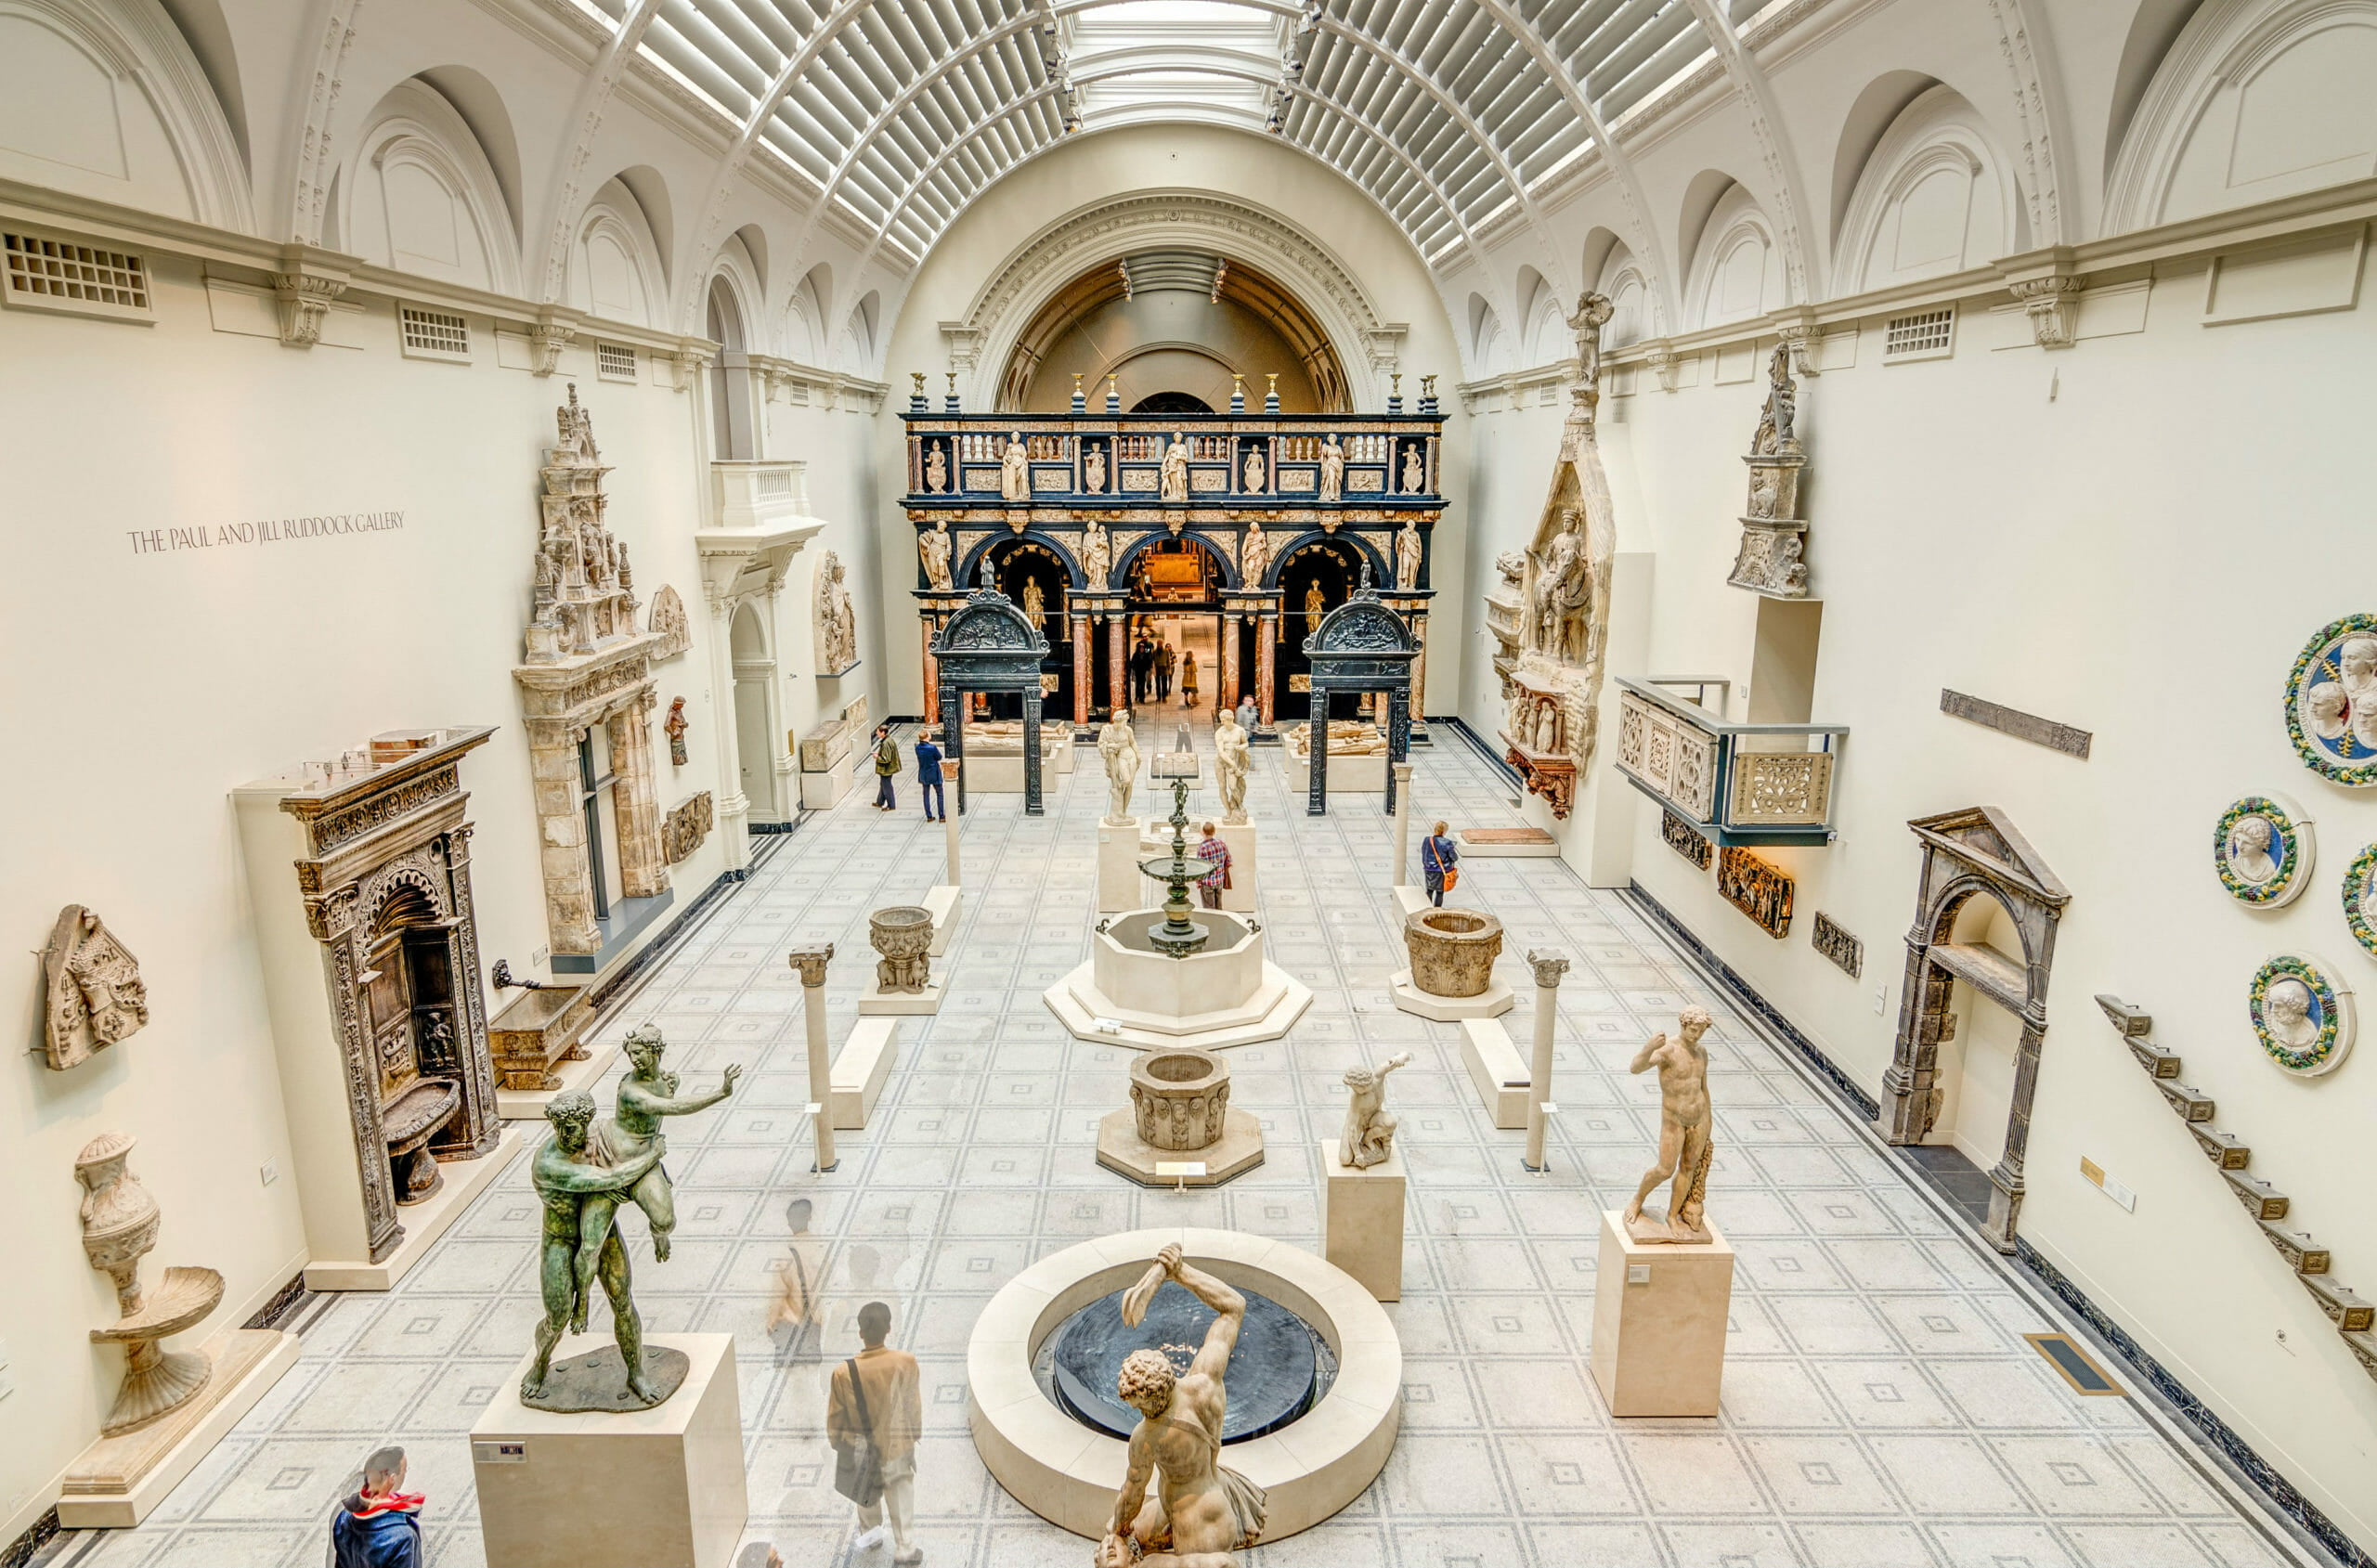 V&A Museum art galleries London